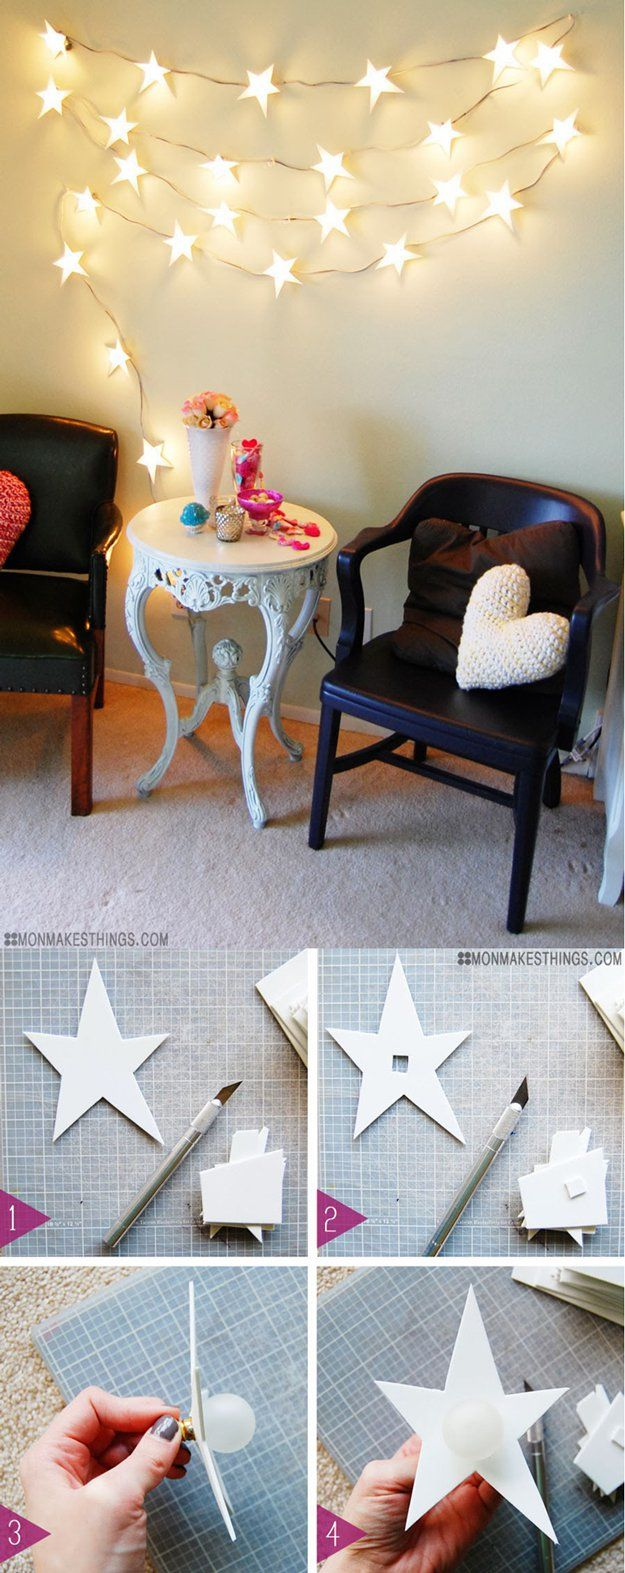 Fun Crafts For Your Room New House Designs